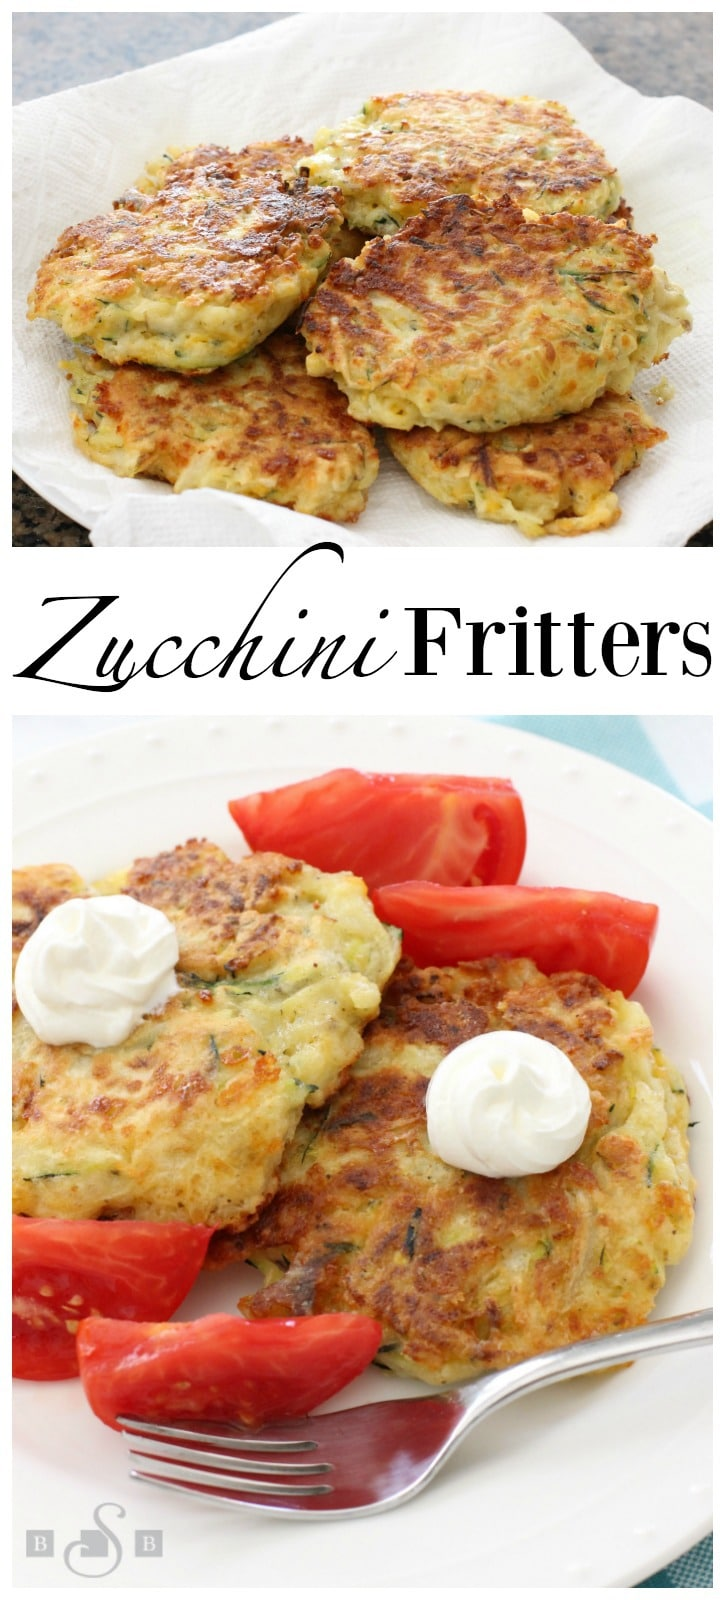 Cheesy Zucchini Fritters are the perfect way to use up some zucchini from your garden! Great as a side dish or appetizer, they're easy to make & flavorful! Easy #zucchini #recipe from Butter With A Side of Bread